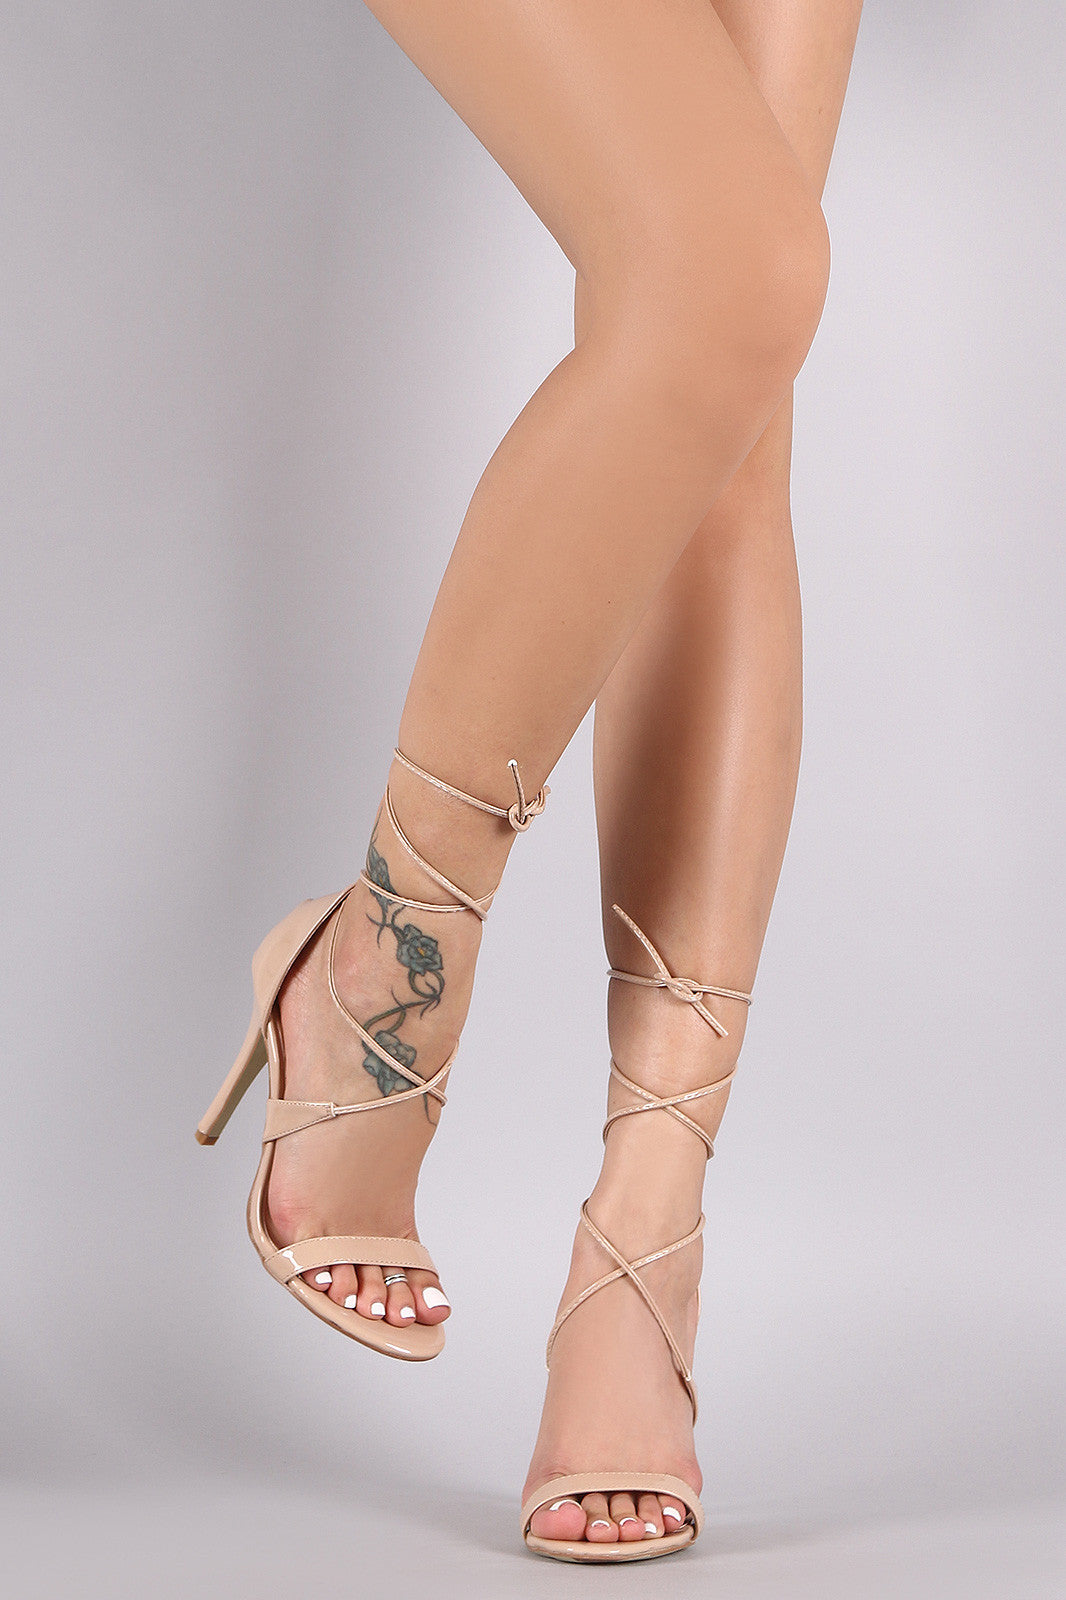 Patent Open Toe Lace-Up Stiletto Heel - Thick 'N' Curvy Shop - 4